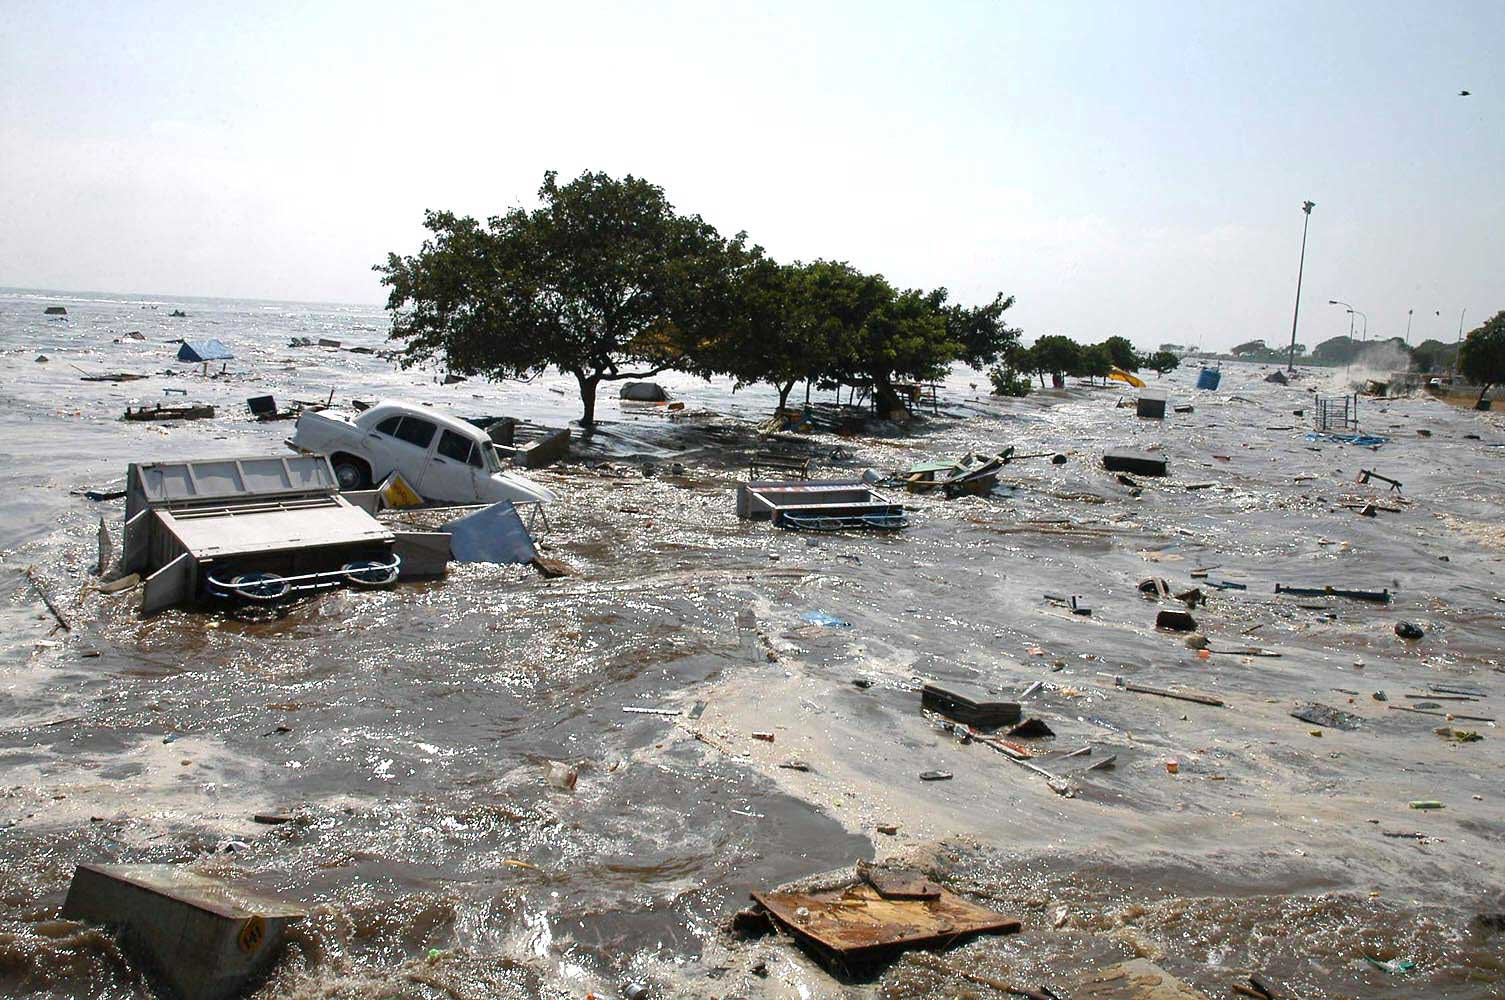 <b>2004:</b> The US and Indian navies cooperated on rescue efforts after the Dec. 2004 tsunami that affected the Indian subcontinent.